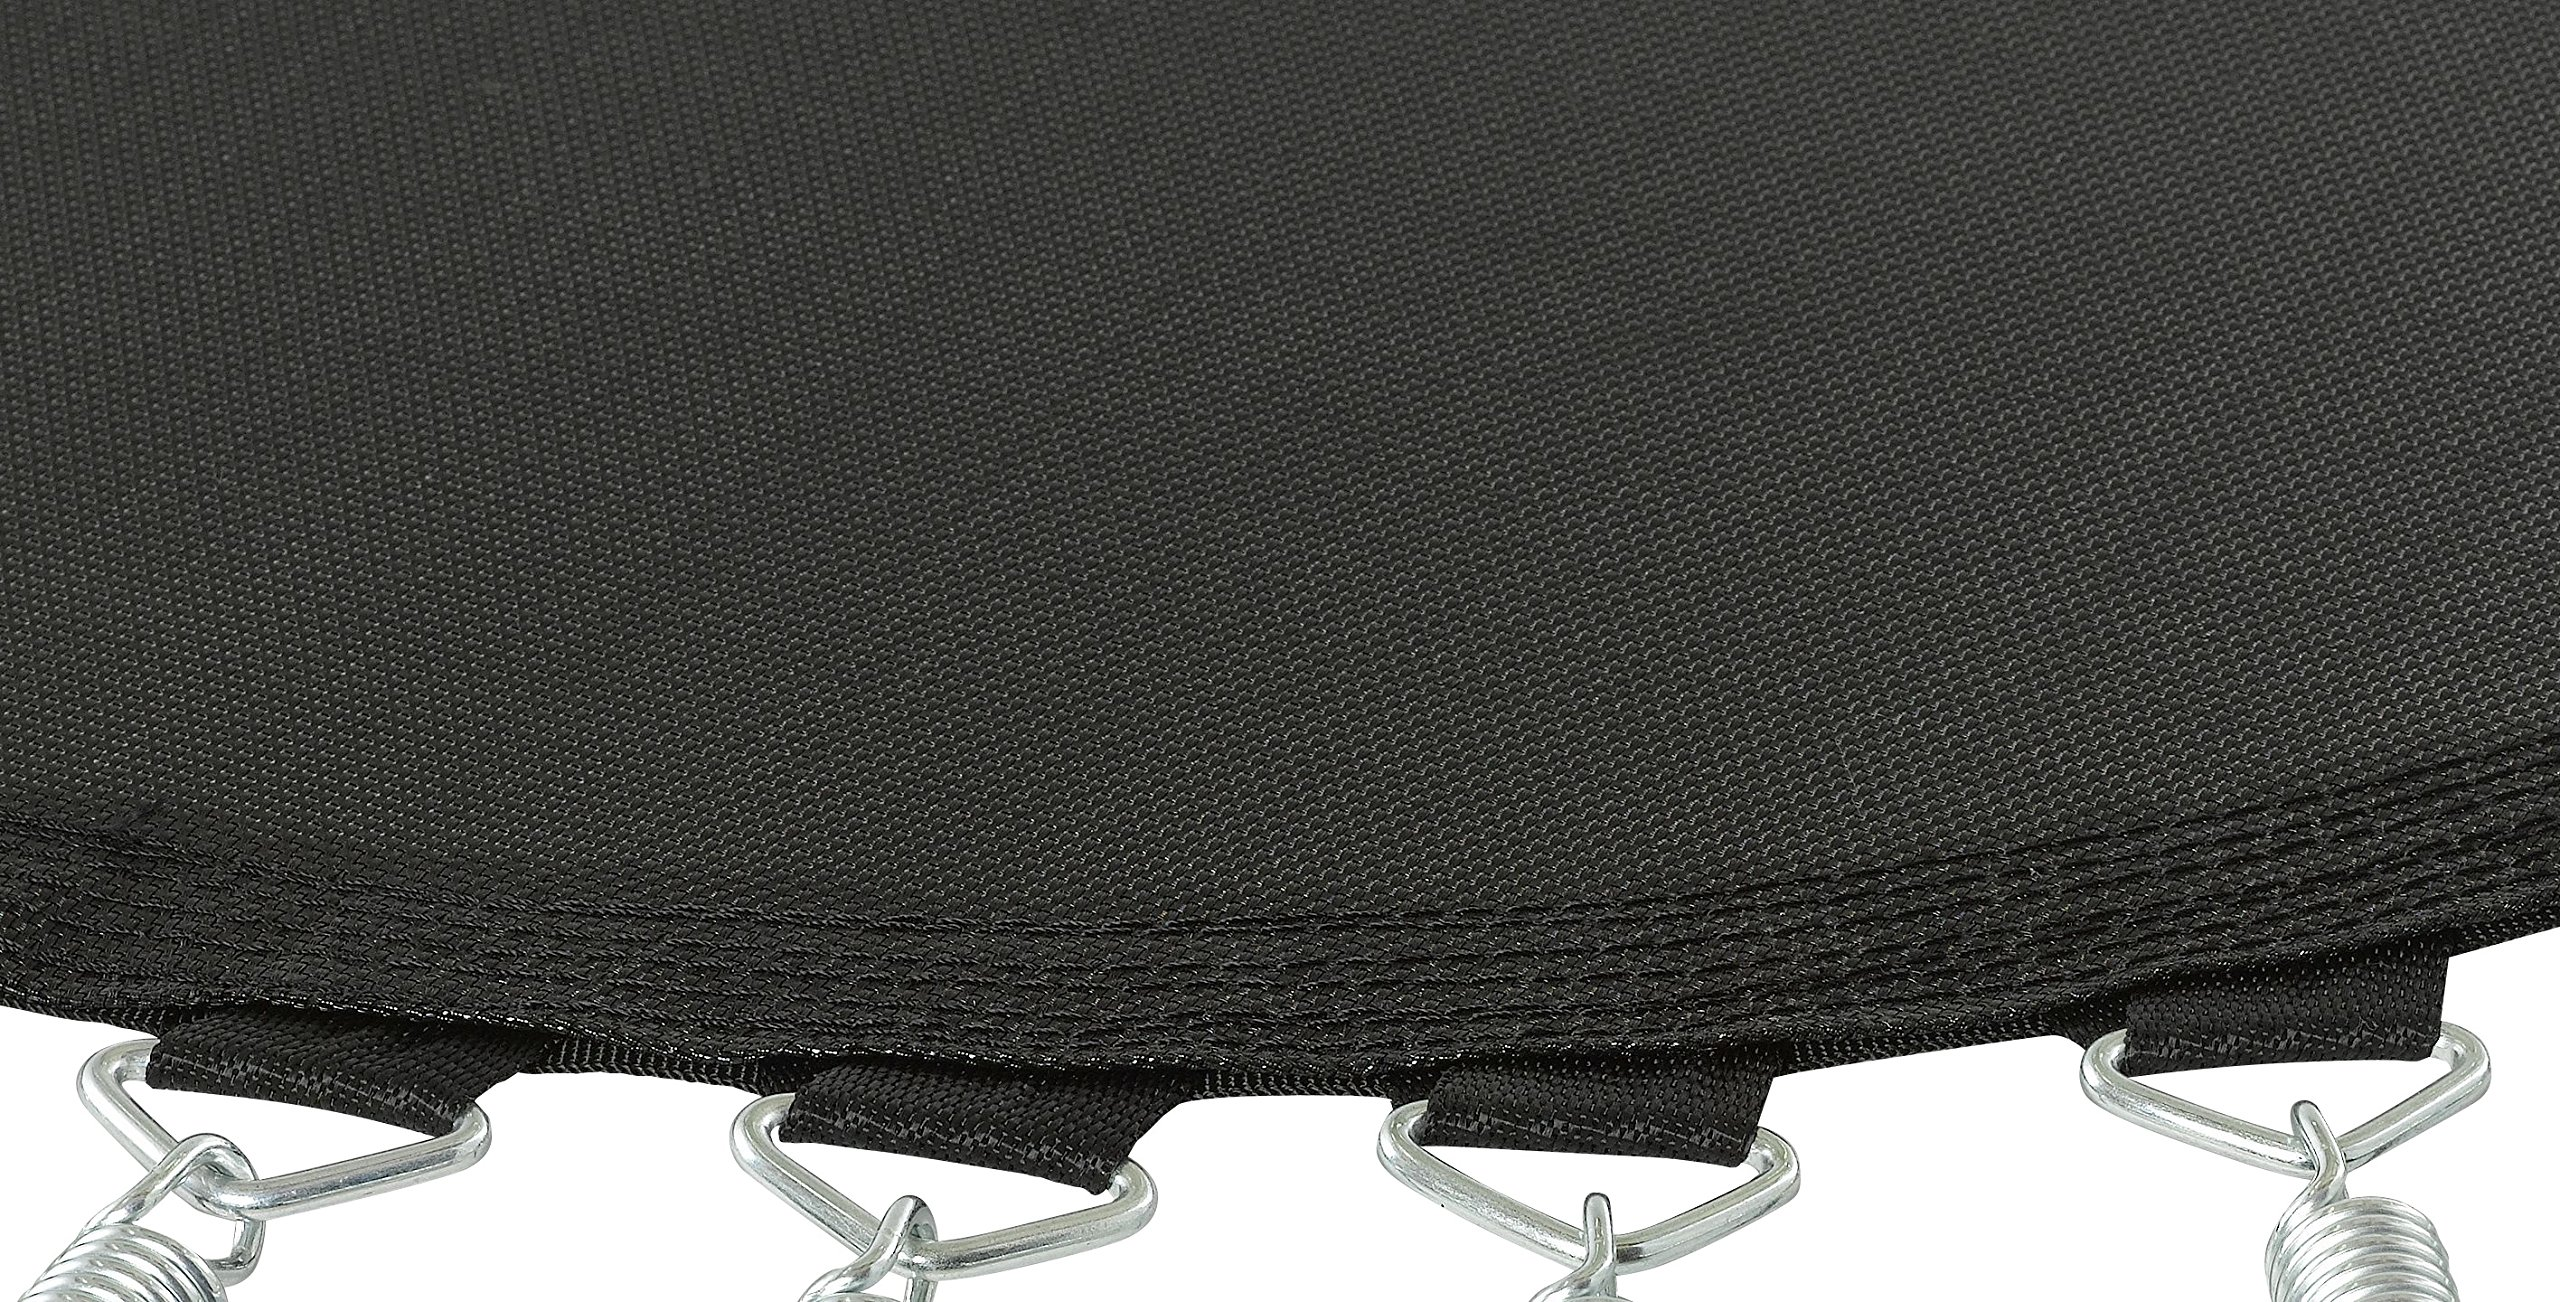 Trampoline Jumping Mat Fits for Sportspower Model # TR-13-EN-FOUR by Upper Bounce (Image #3)